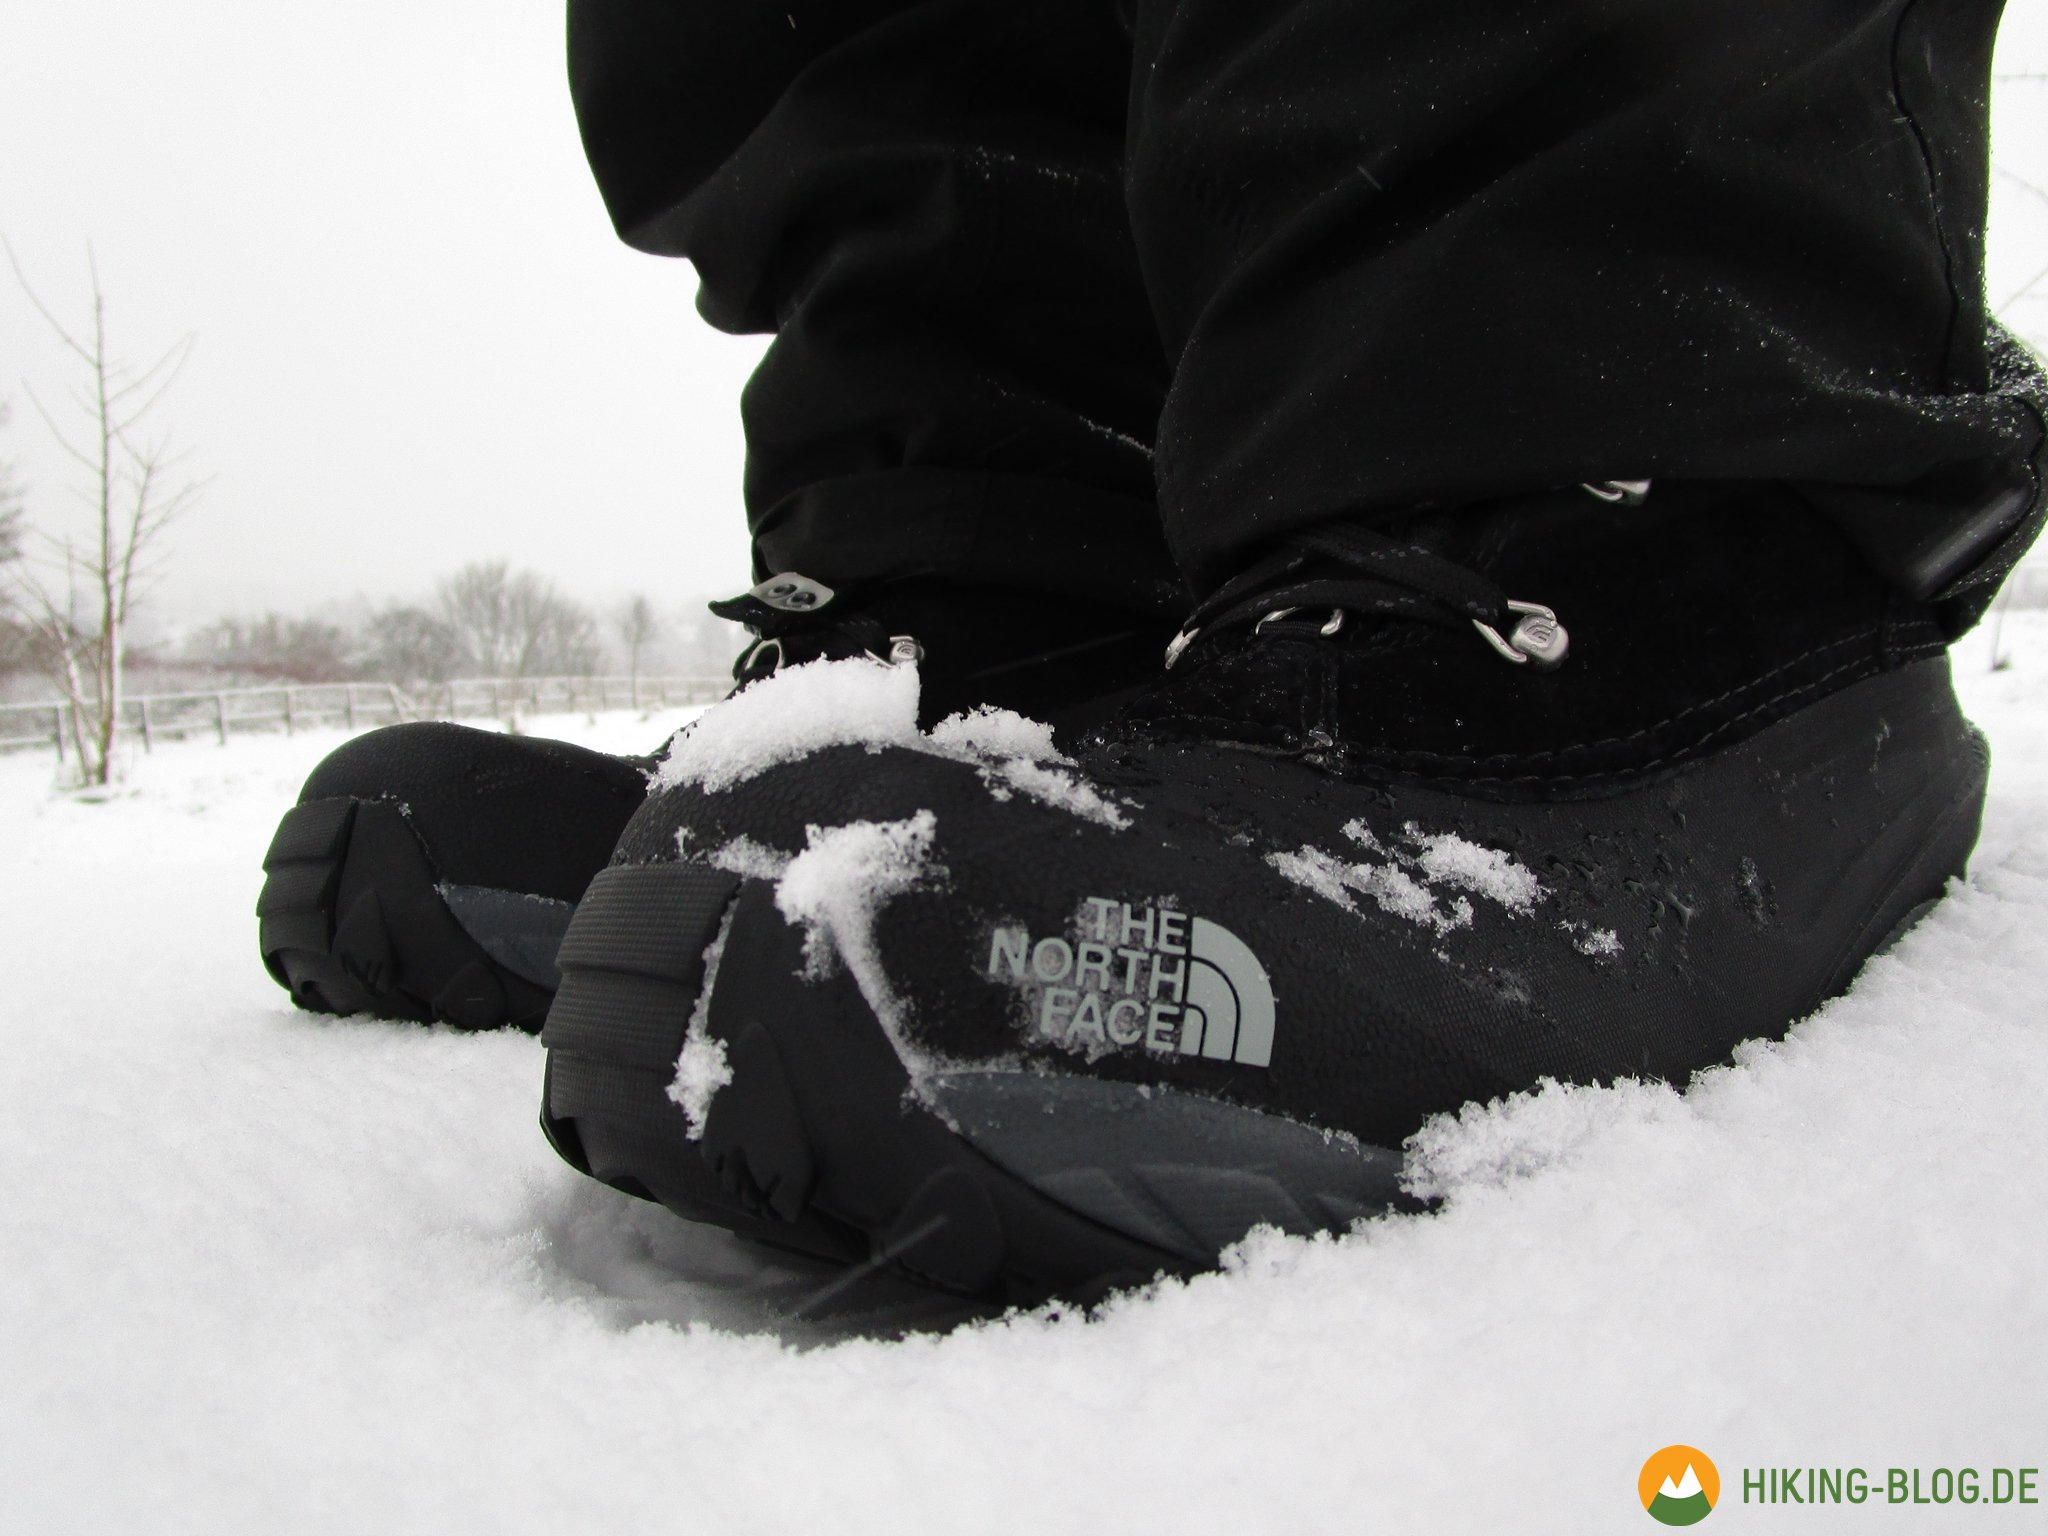 official photos 6e832 1467a Praxistest: The North Face Chilkat II Winterstiefel - Hiking ...